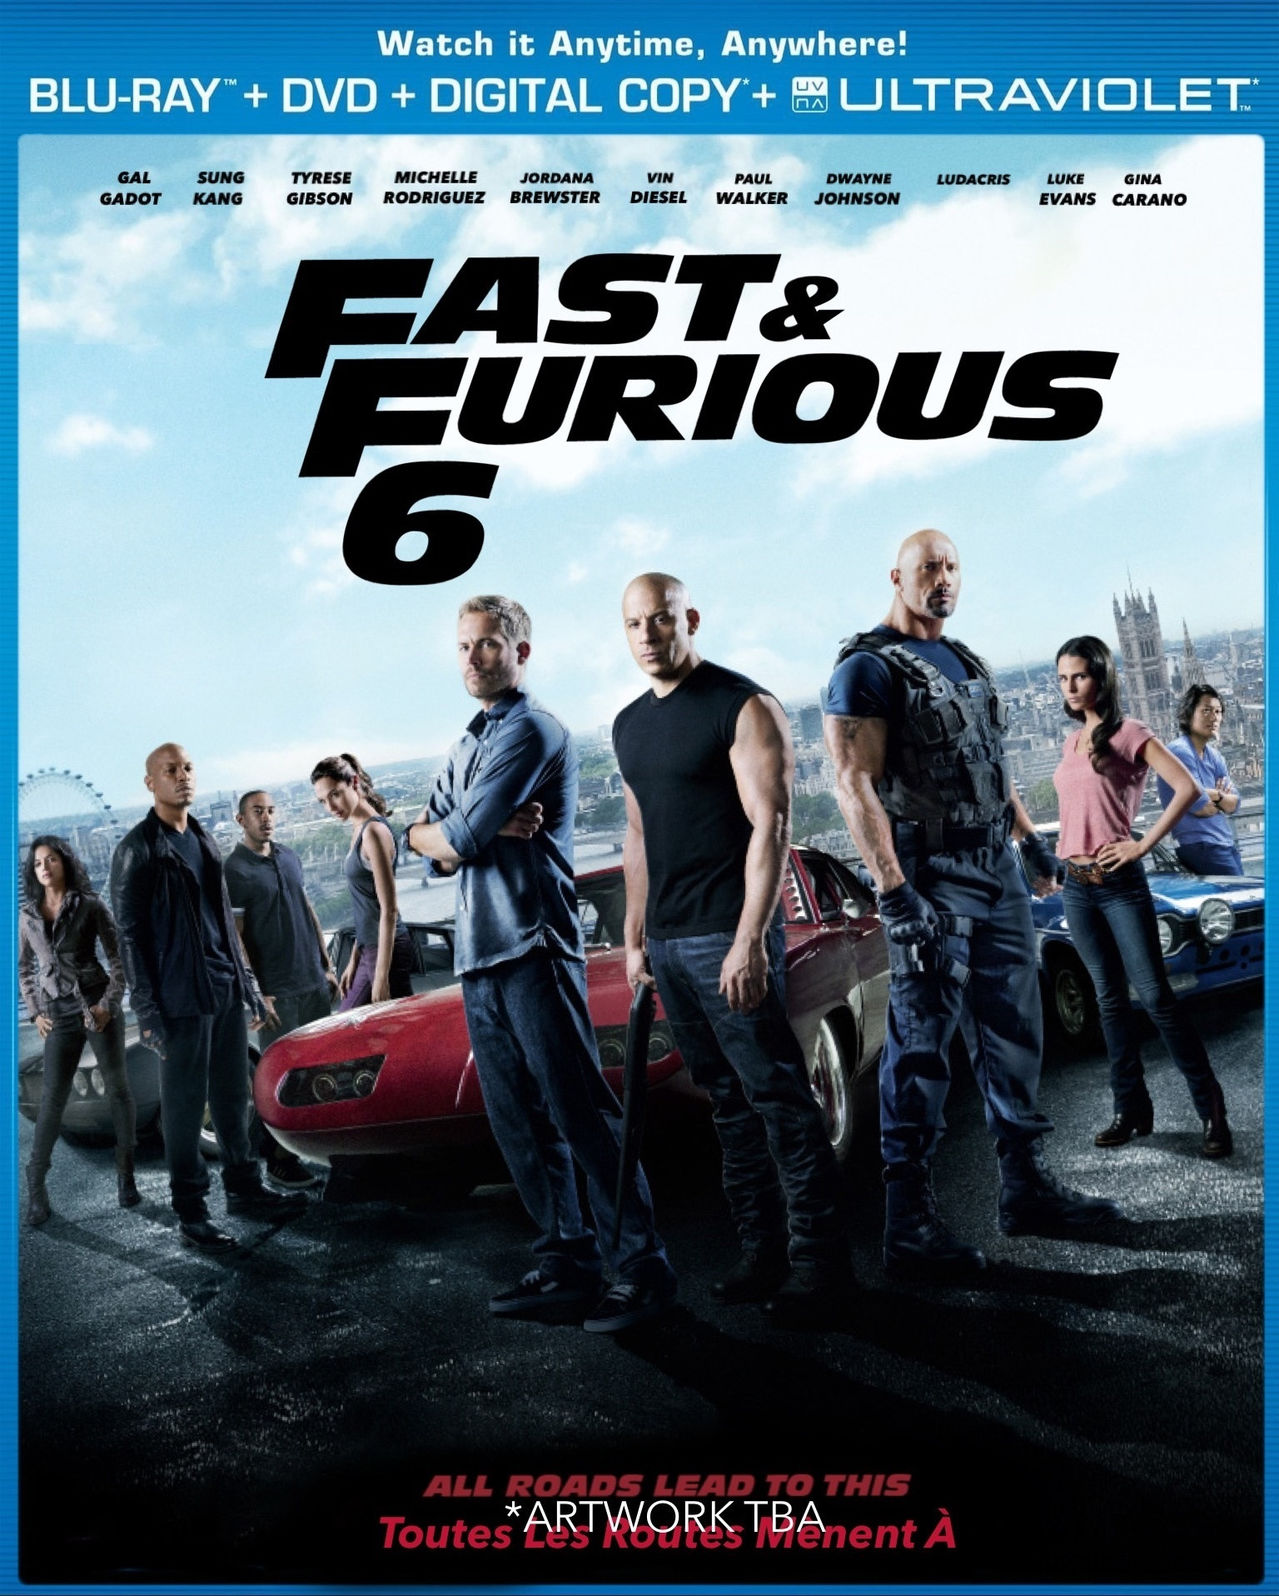 download film baru fast amp furious 6 2013 extended bluray